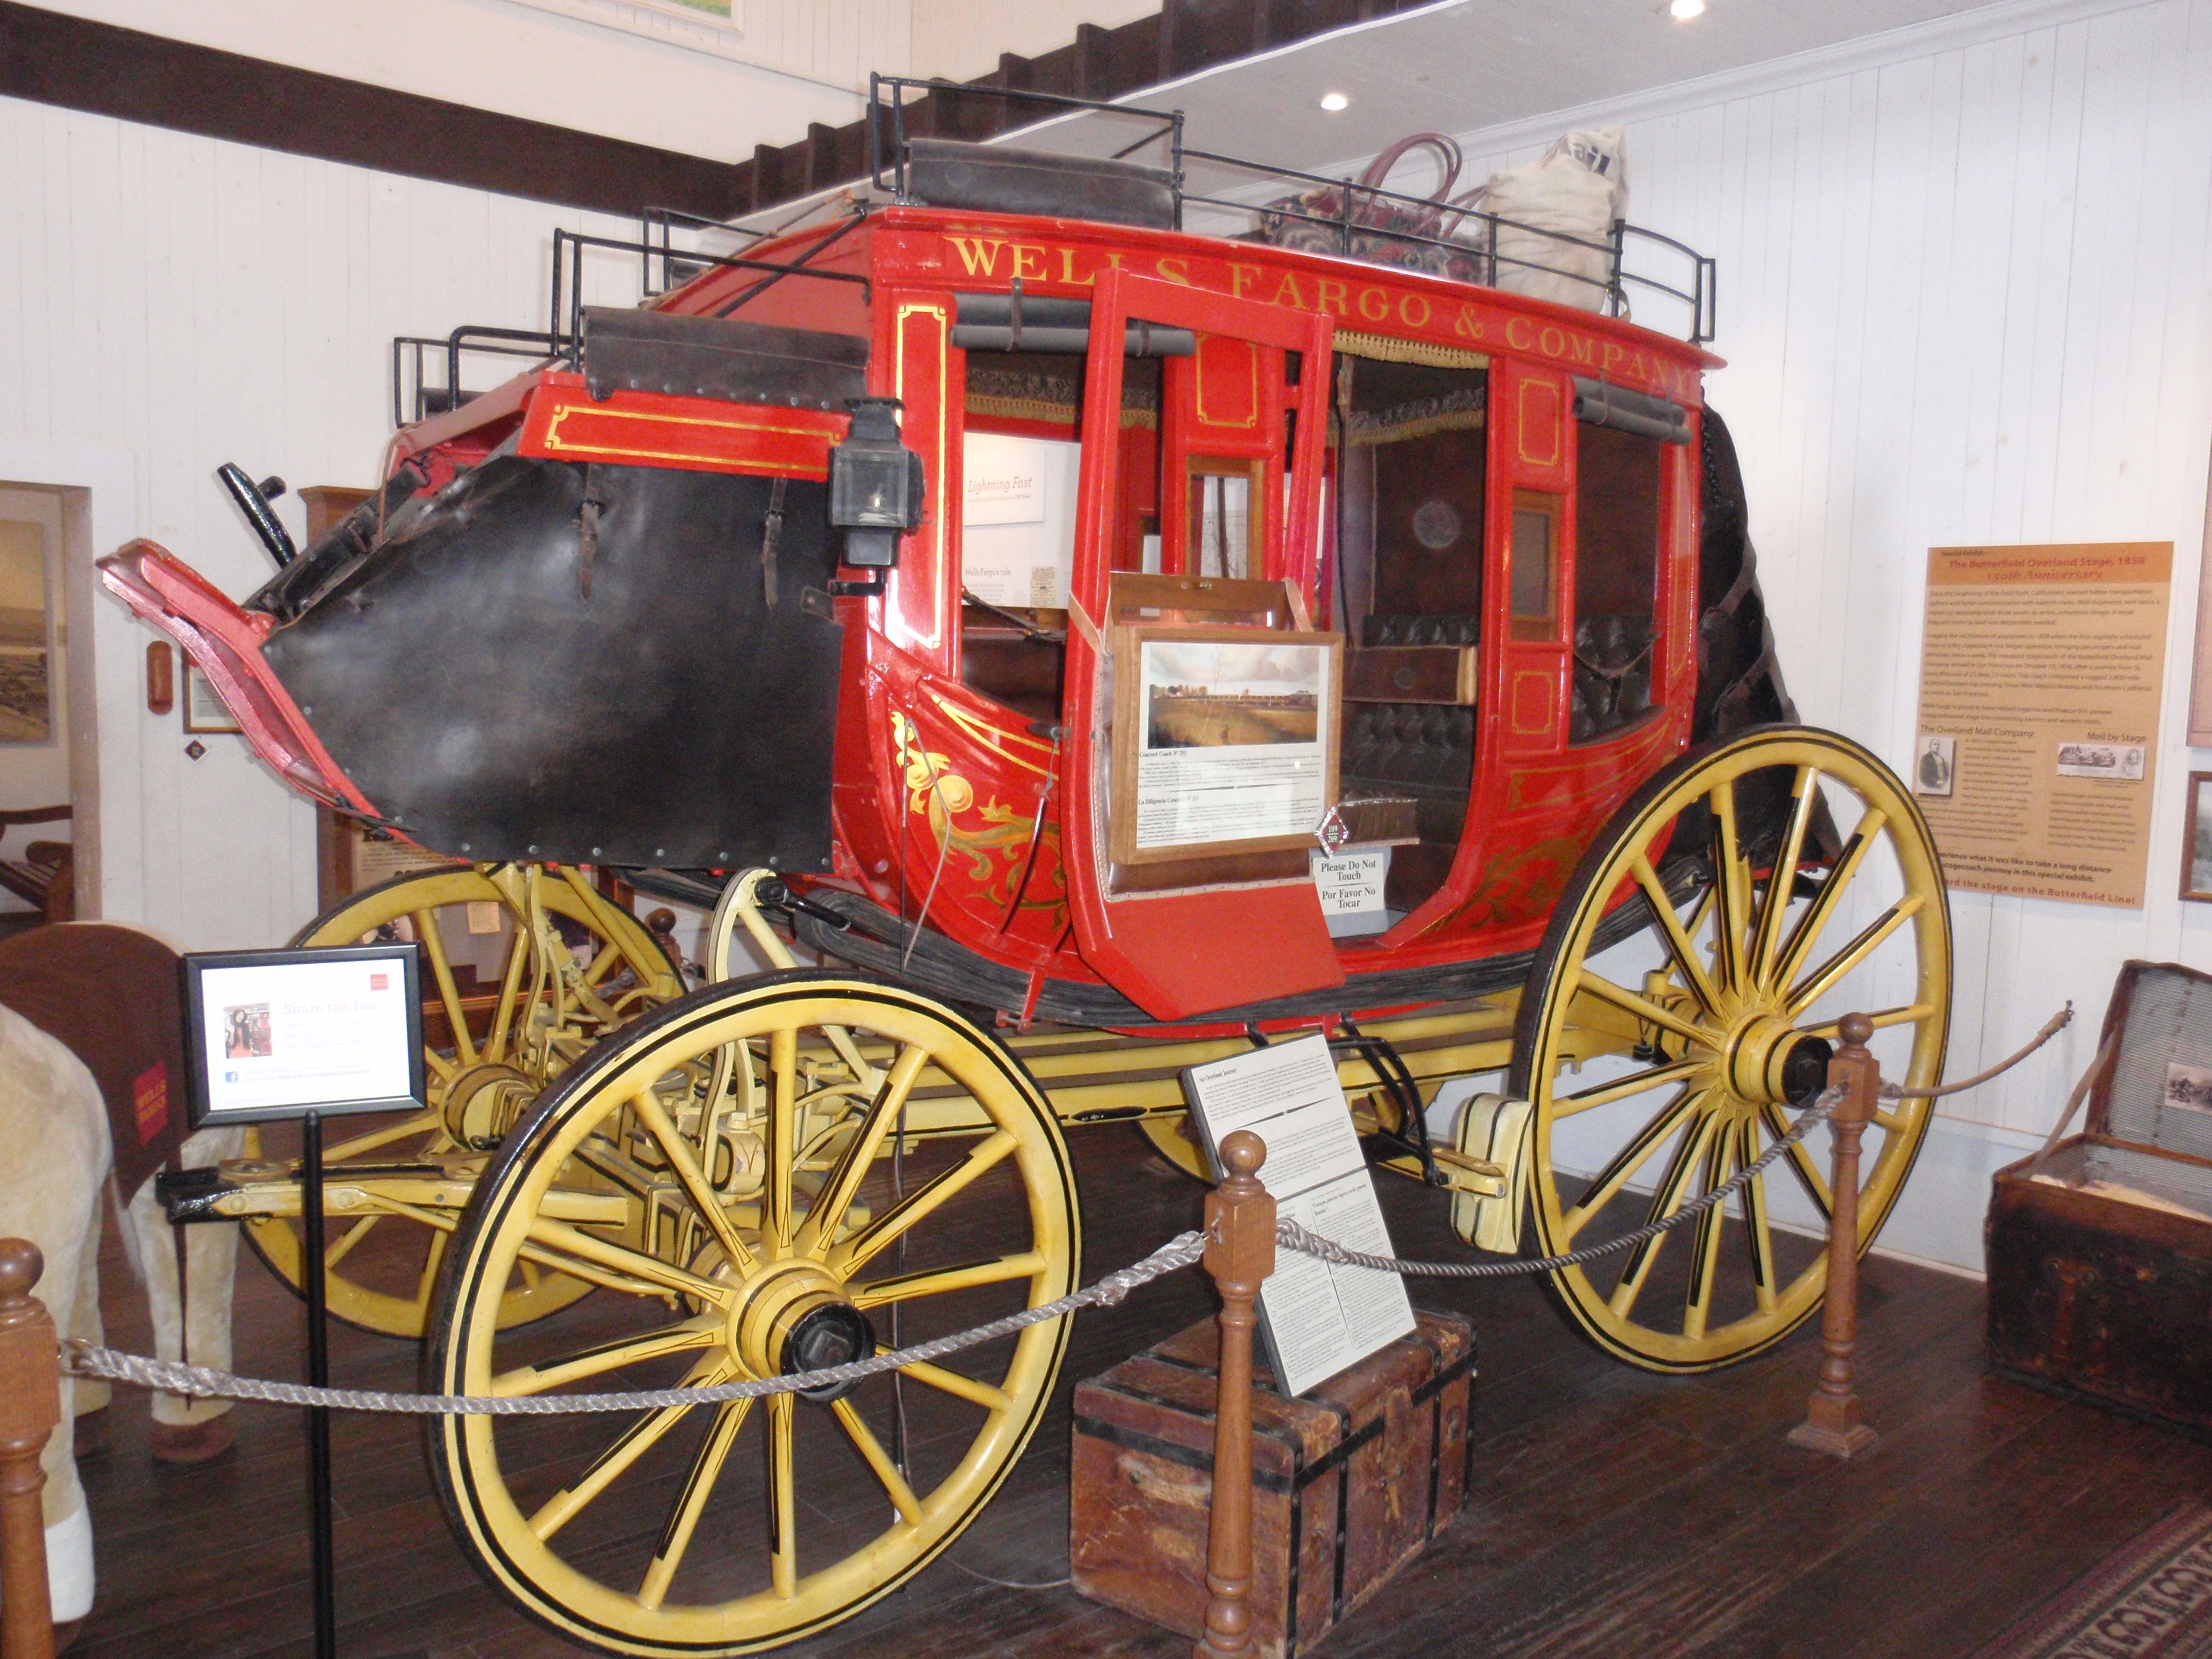 Wells Fargo Concord stagecoach. April 2012 photo by James Ulvog.